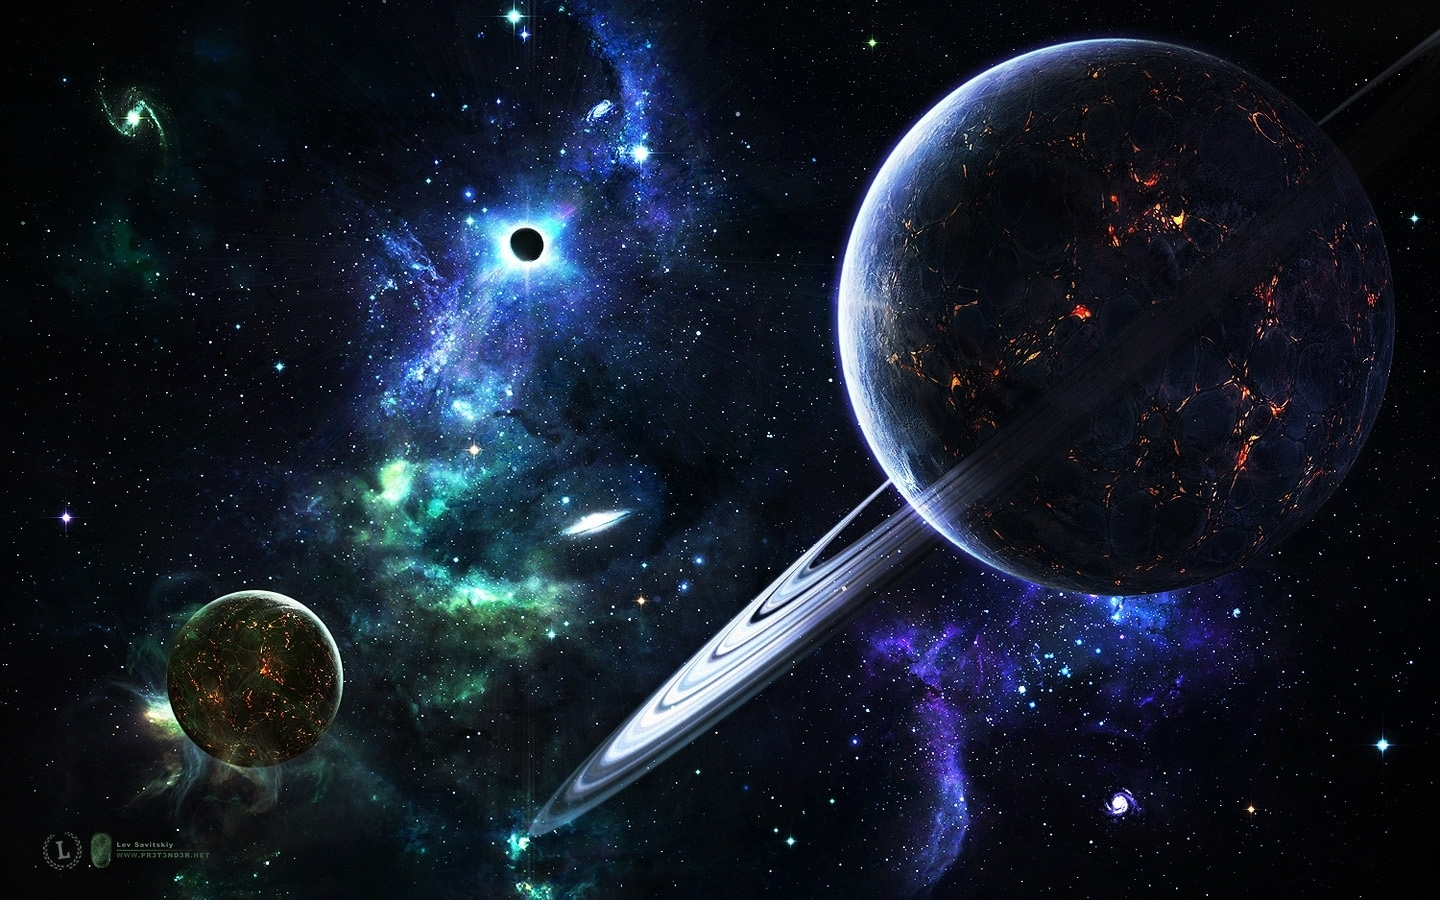 Space Best Art Photos Taken HD Wallpapers 7657 HD Wallpaper 3D 1440x900